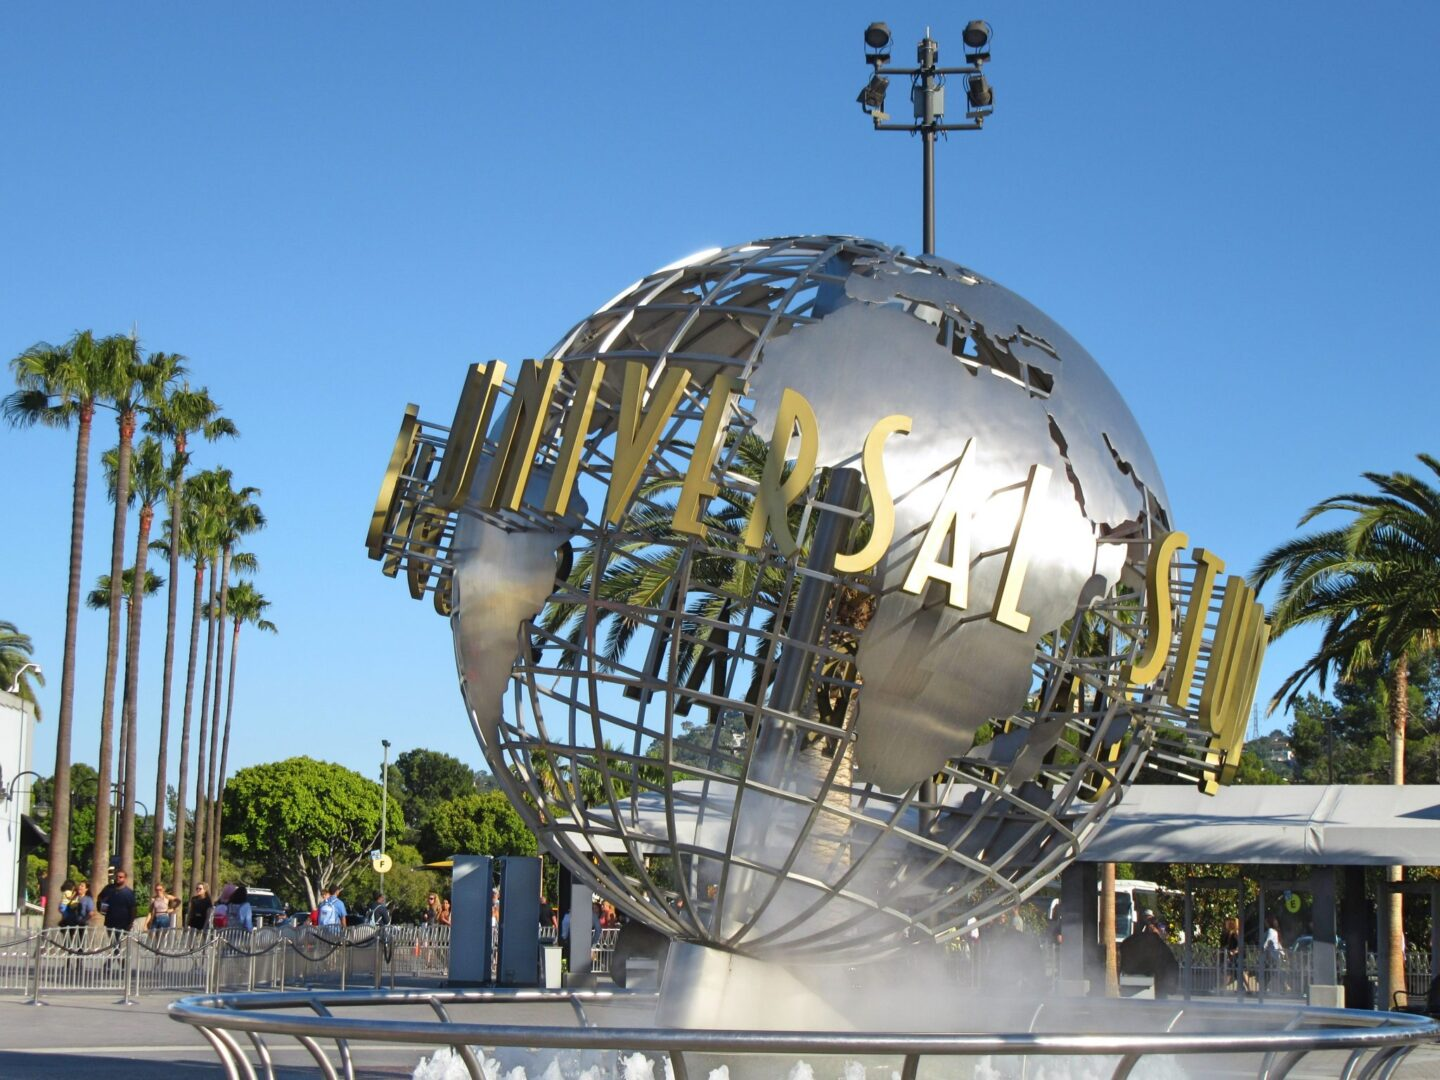 USA: Is Universal Studios Hollywood Just For Kids?